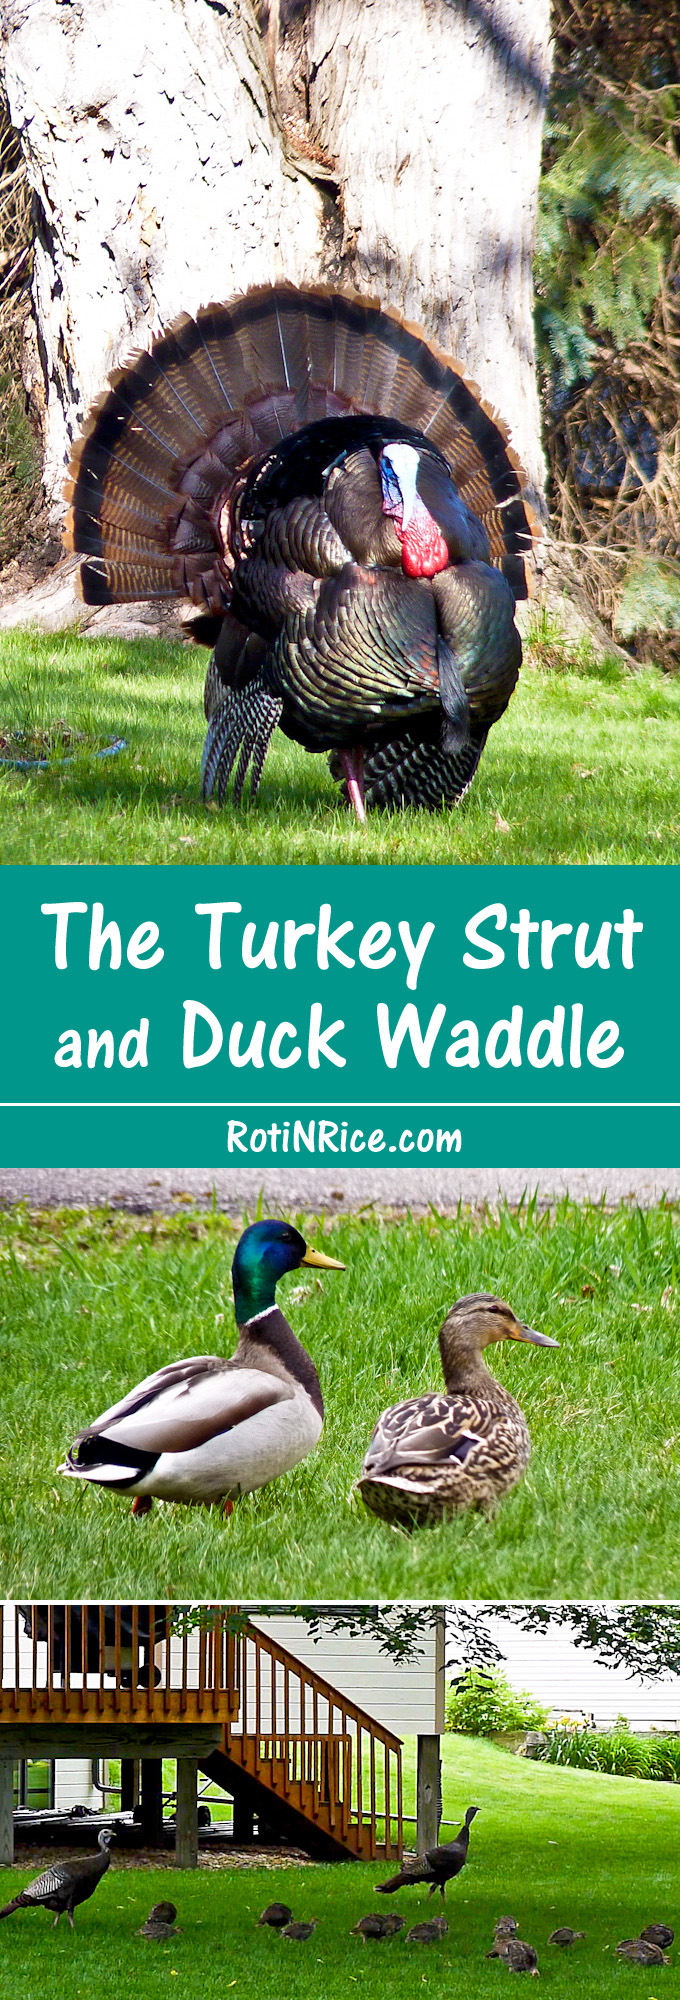 The Turkey Strut and Duck Waddle – watch this gobbler, display, fan, and strut in pursuit of a mate and a handsome pair of Mallard ducks waddling in the Prairie.| RotiNRice.com